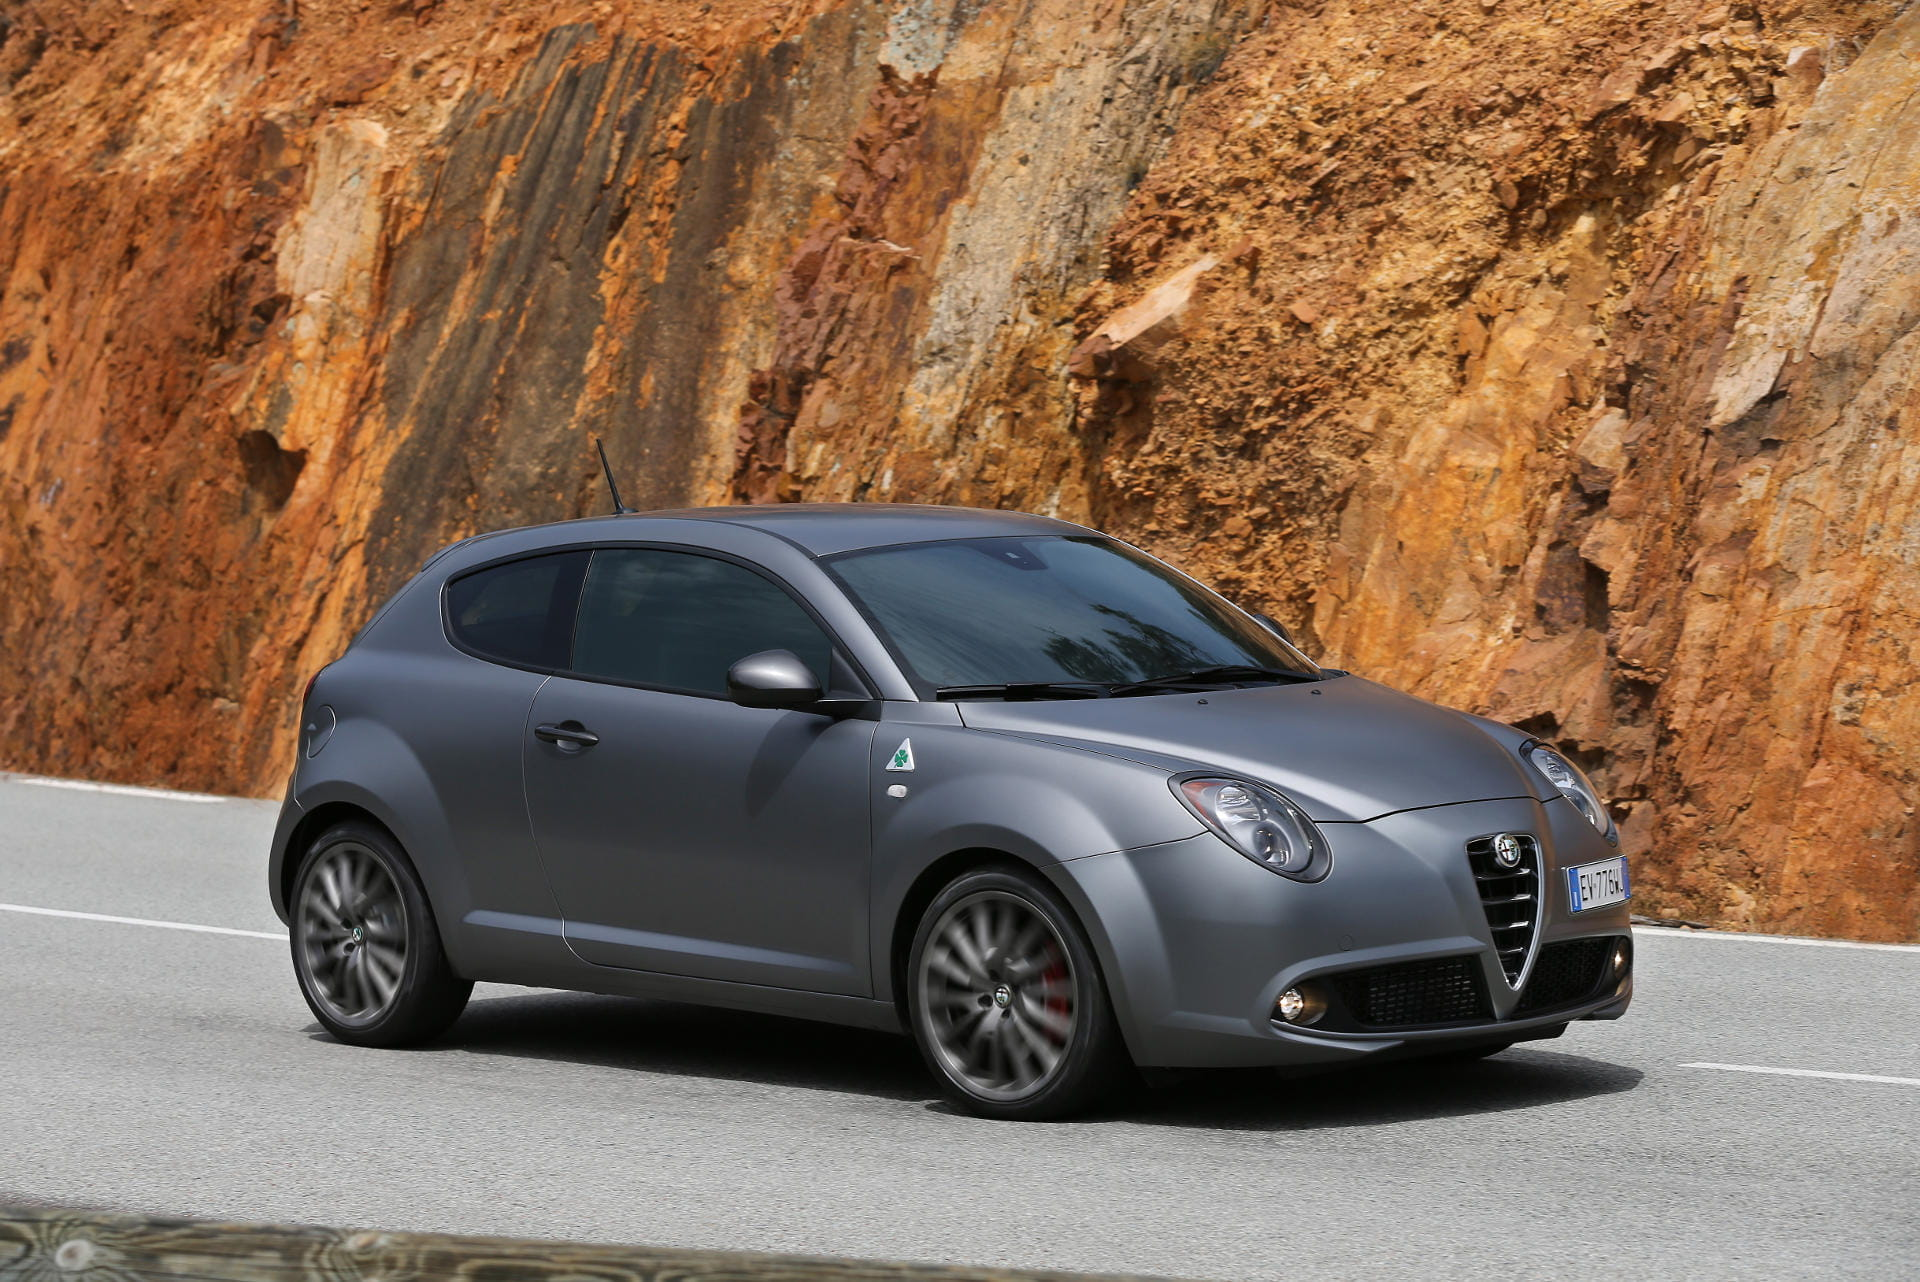 alfa romeo mito y mito quadrifoglio verde qv precios prueba ficha t cnica fotos y noticias. Black Bedroom Furniture Sets. Home Design Ideas